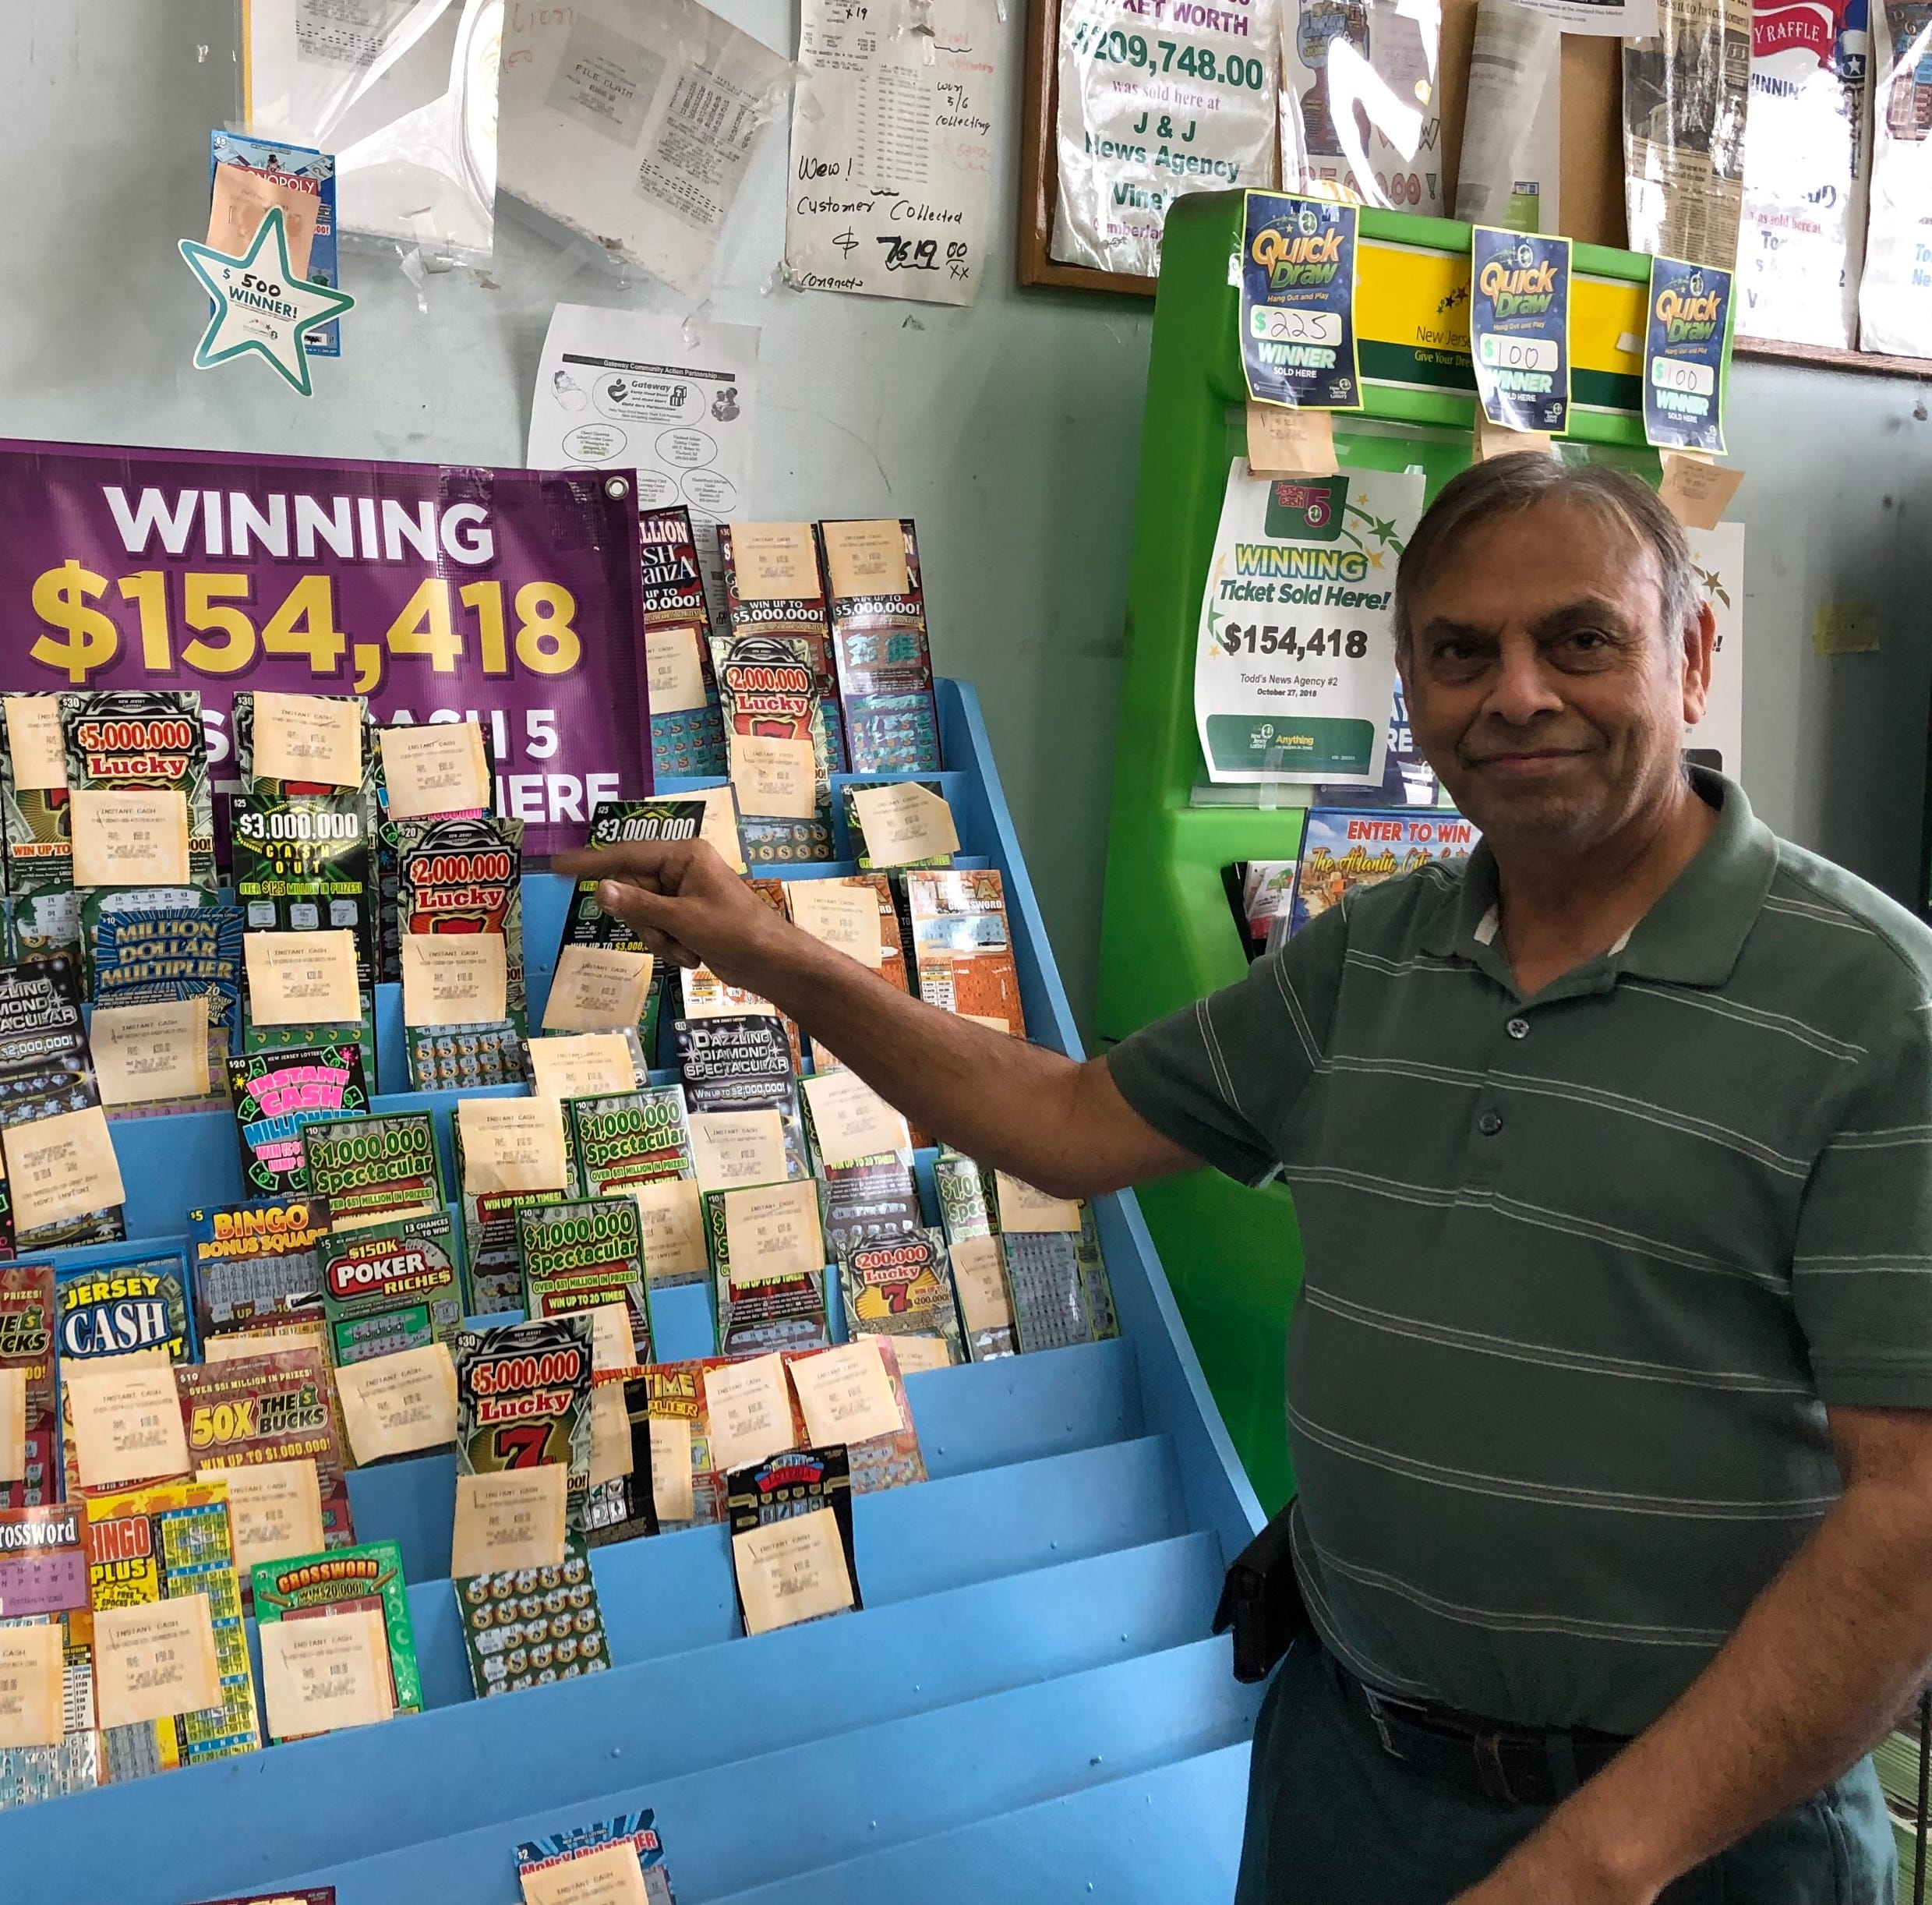 $2M winning scratch-off lottery ticket sold in Vineland